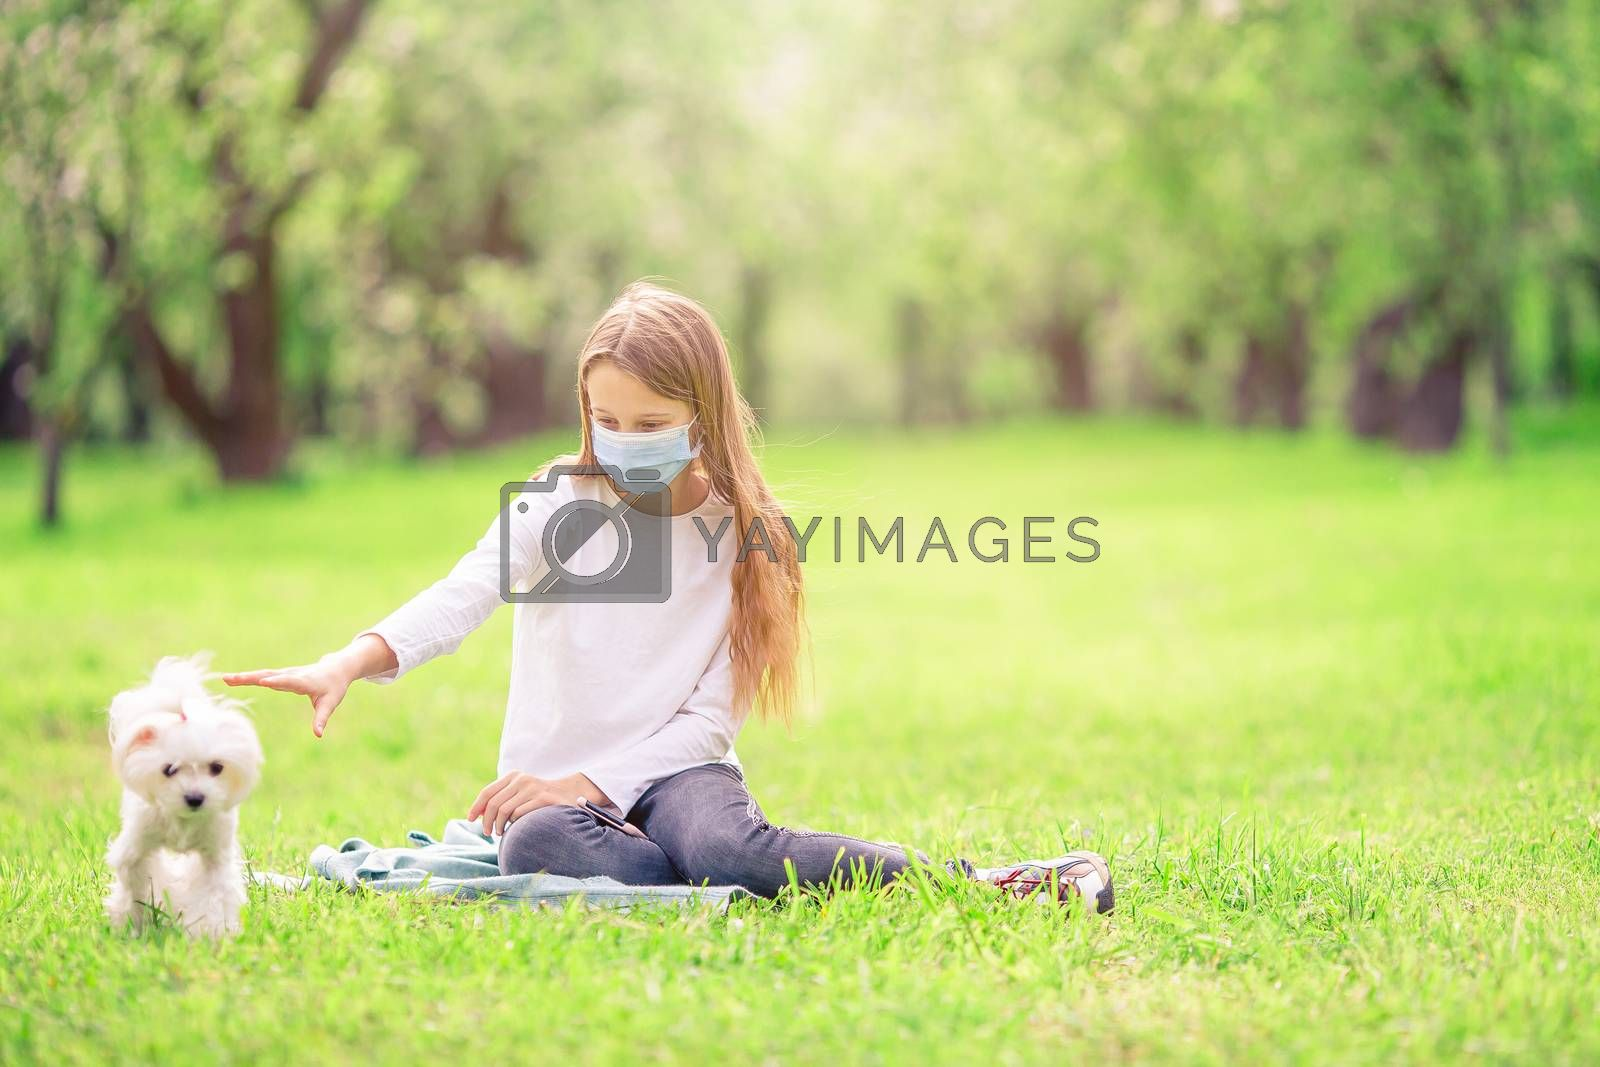 Little girl with dog wearing protective medical mask for prevent virus outdoors in the park by travnikovstudio